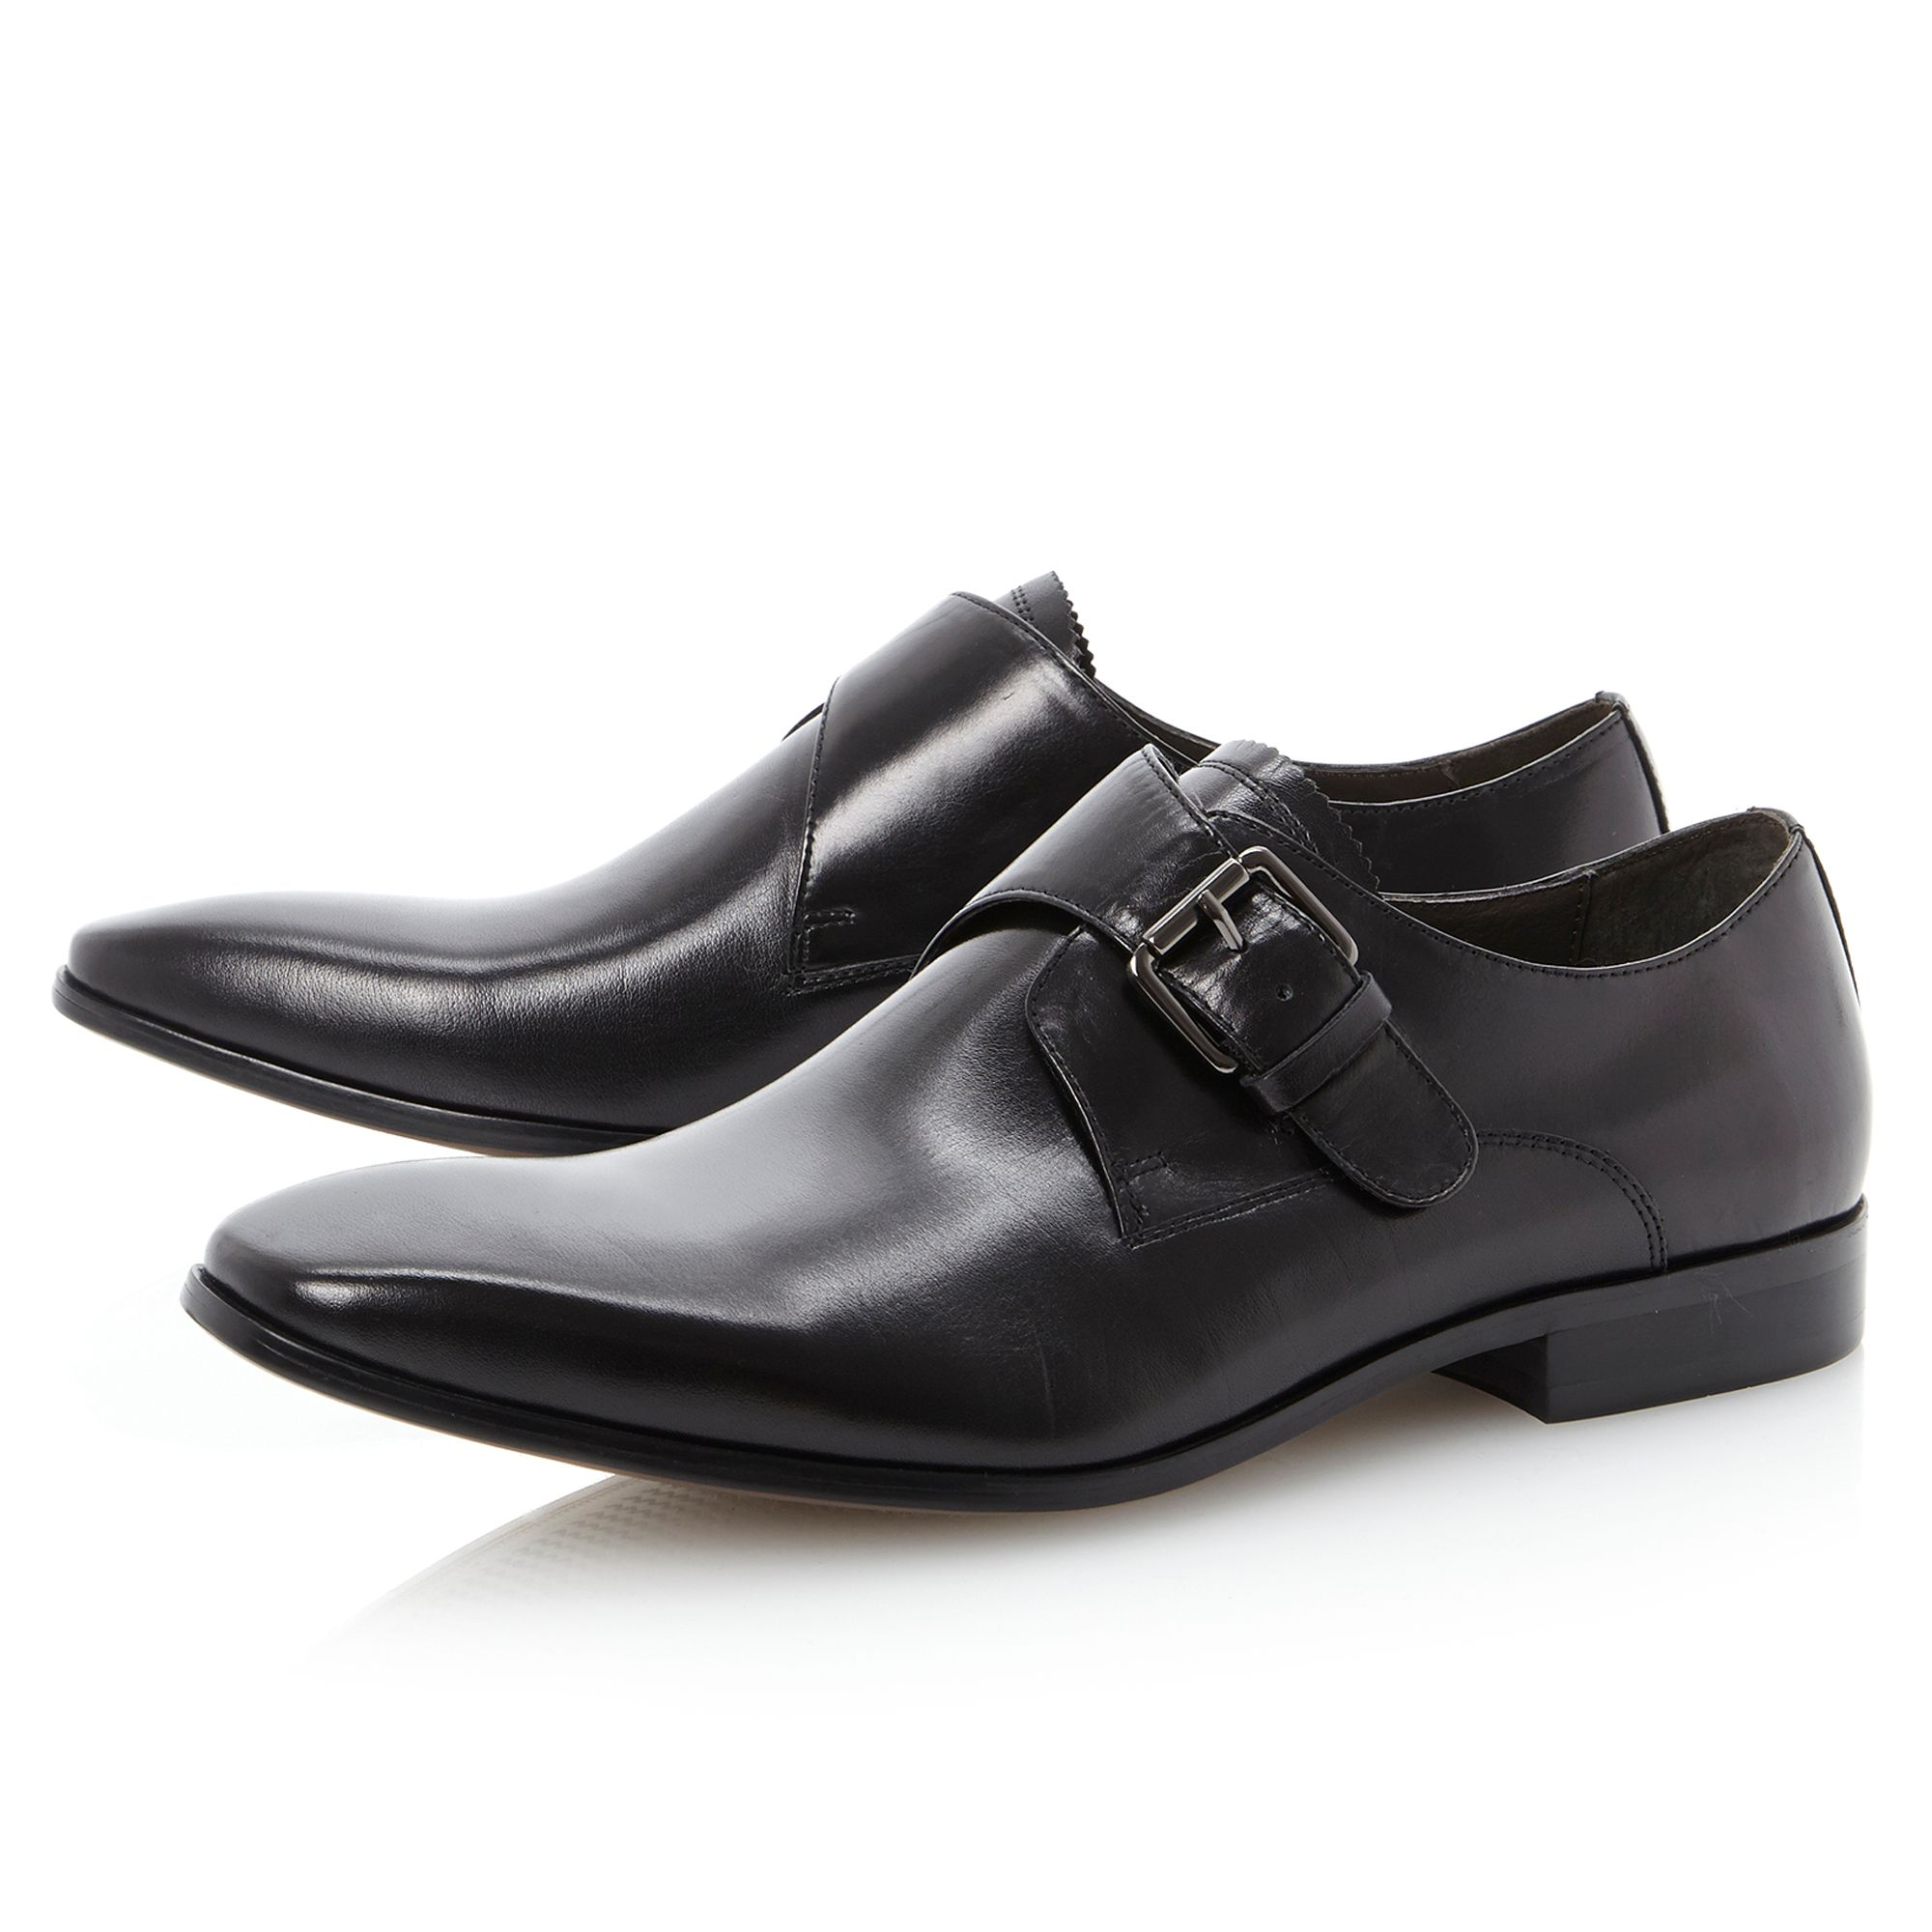 Anarchal monk shoes